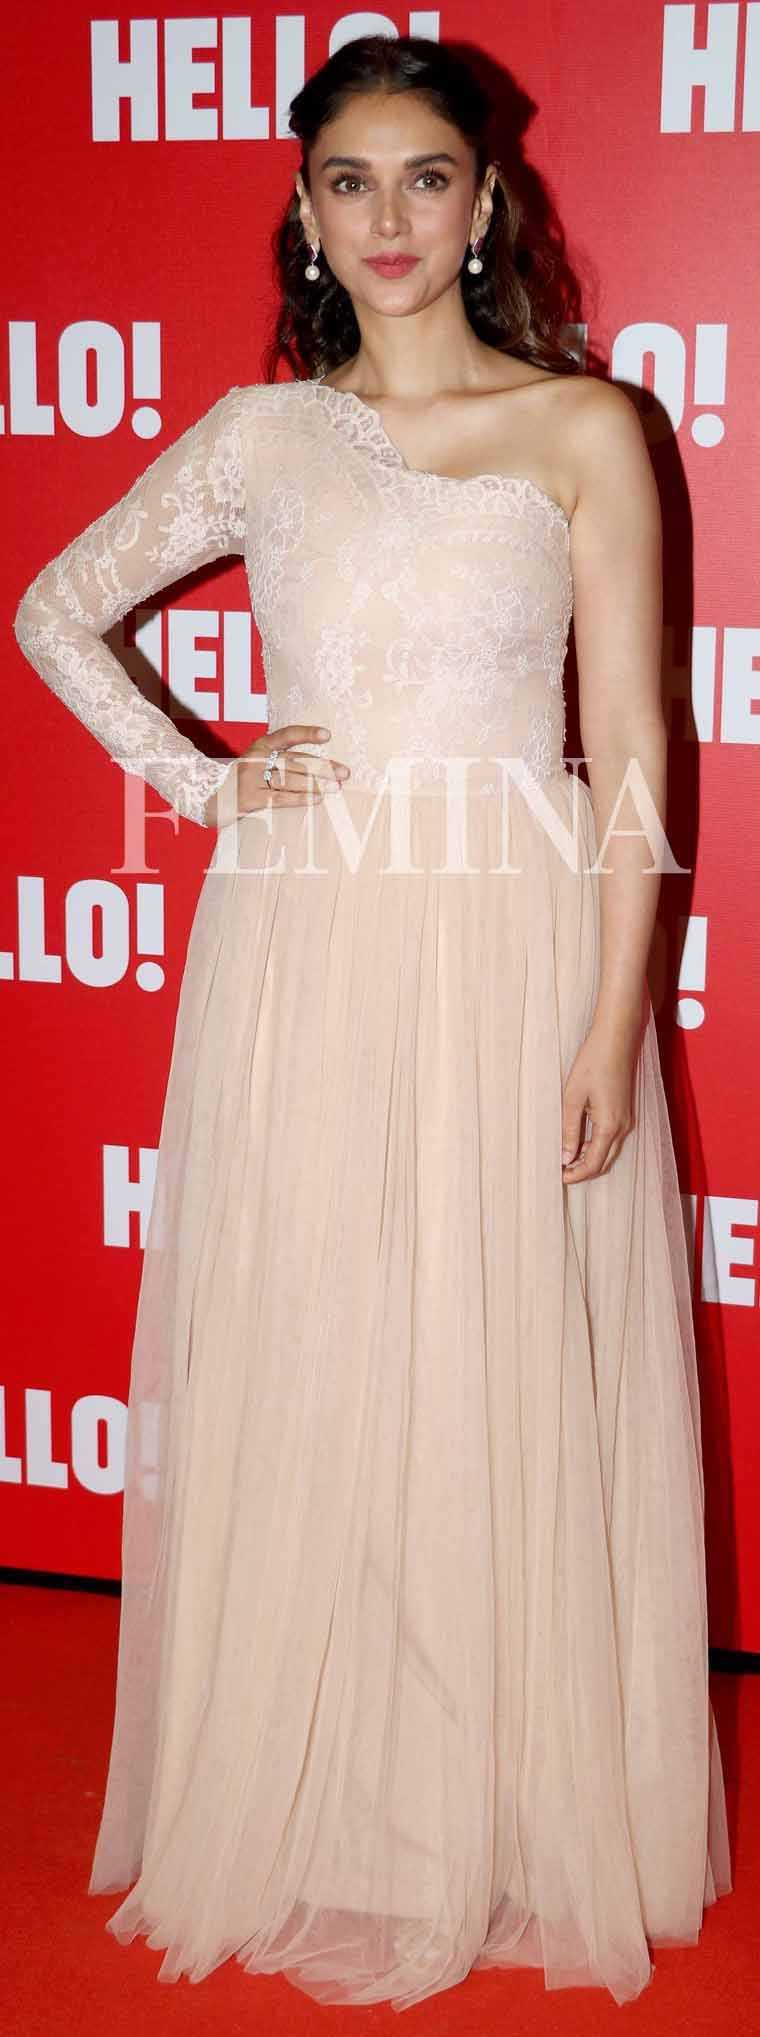 ADITI RAO HYDARI: The actor looked angelic in this cream Hema dress and jewellery from Minawala. The lace sleeve and pleat detailing as well as her partly pinned hair gave us serious fairytale princess vibes.